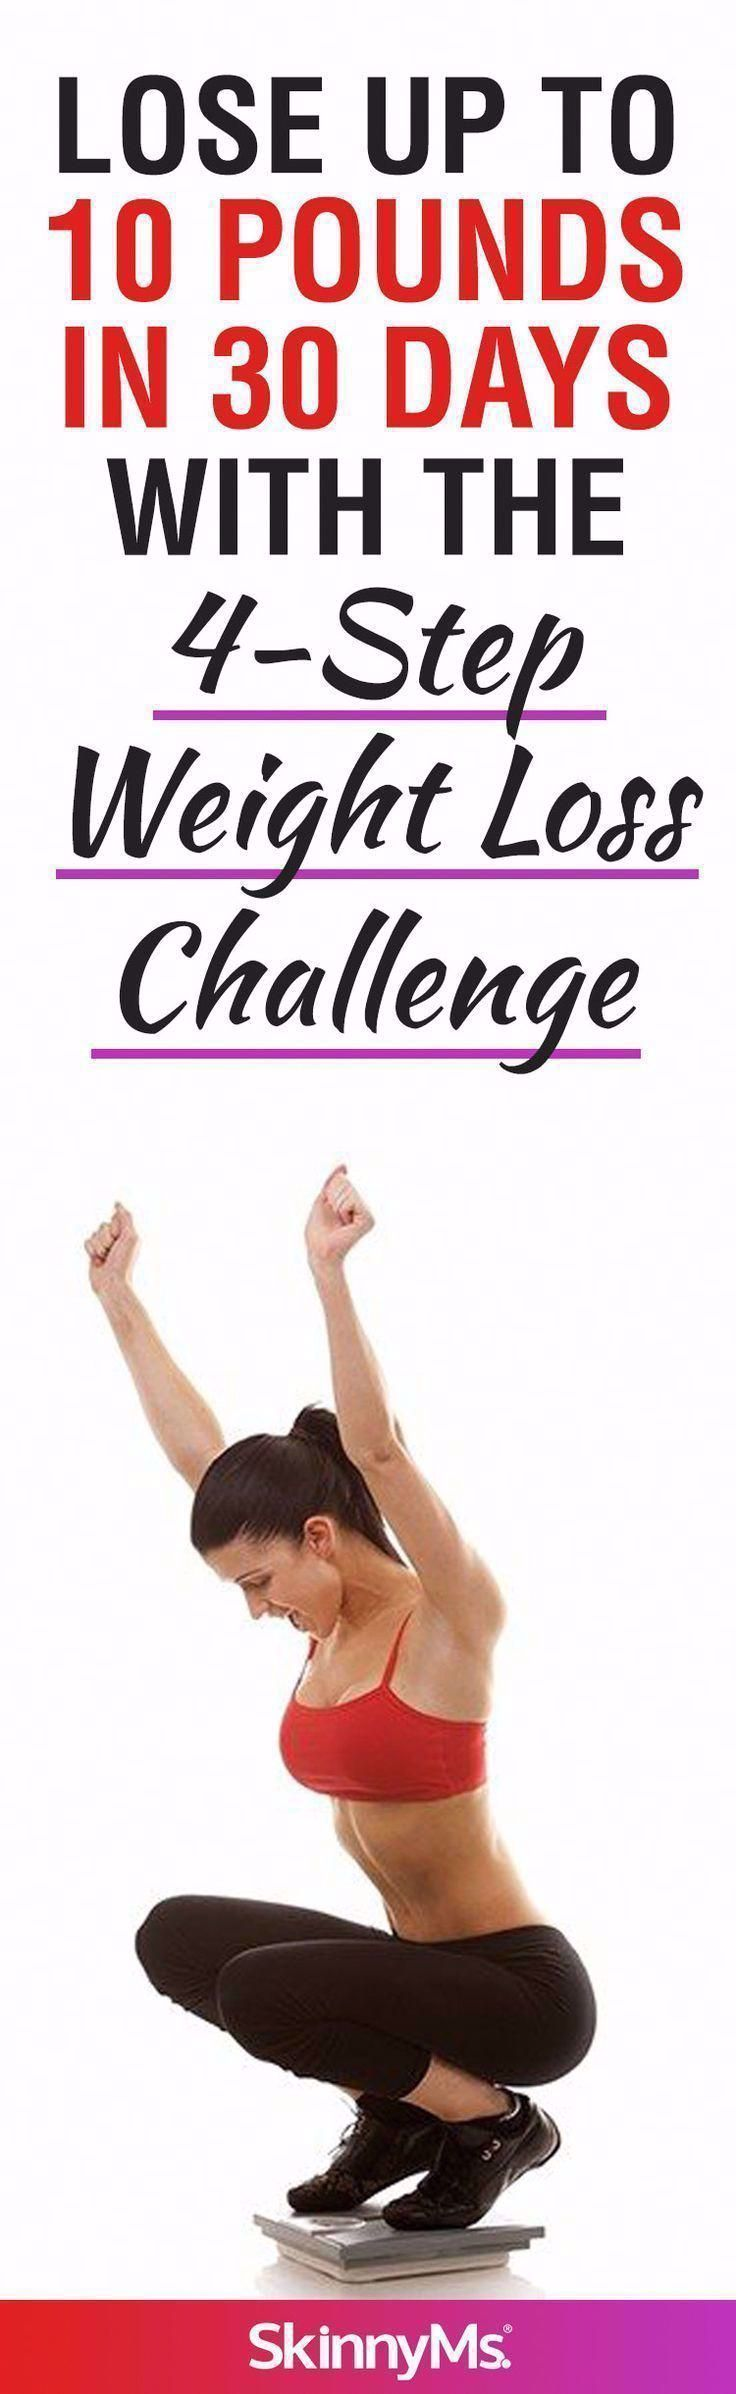 Lose Up to 10 Pounds in 30 Days with the 4-Step Weight Loss Challenge #fitness #... - #4Step #Apple...